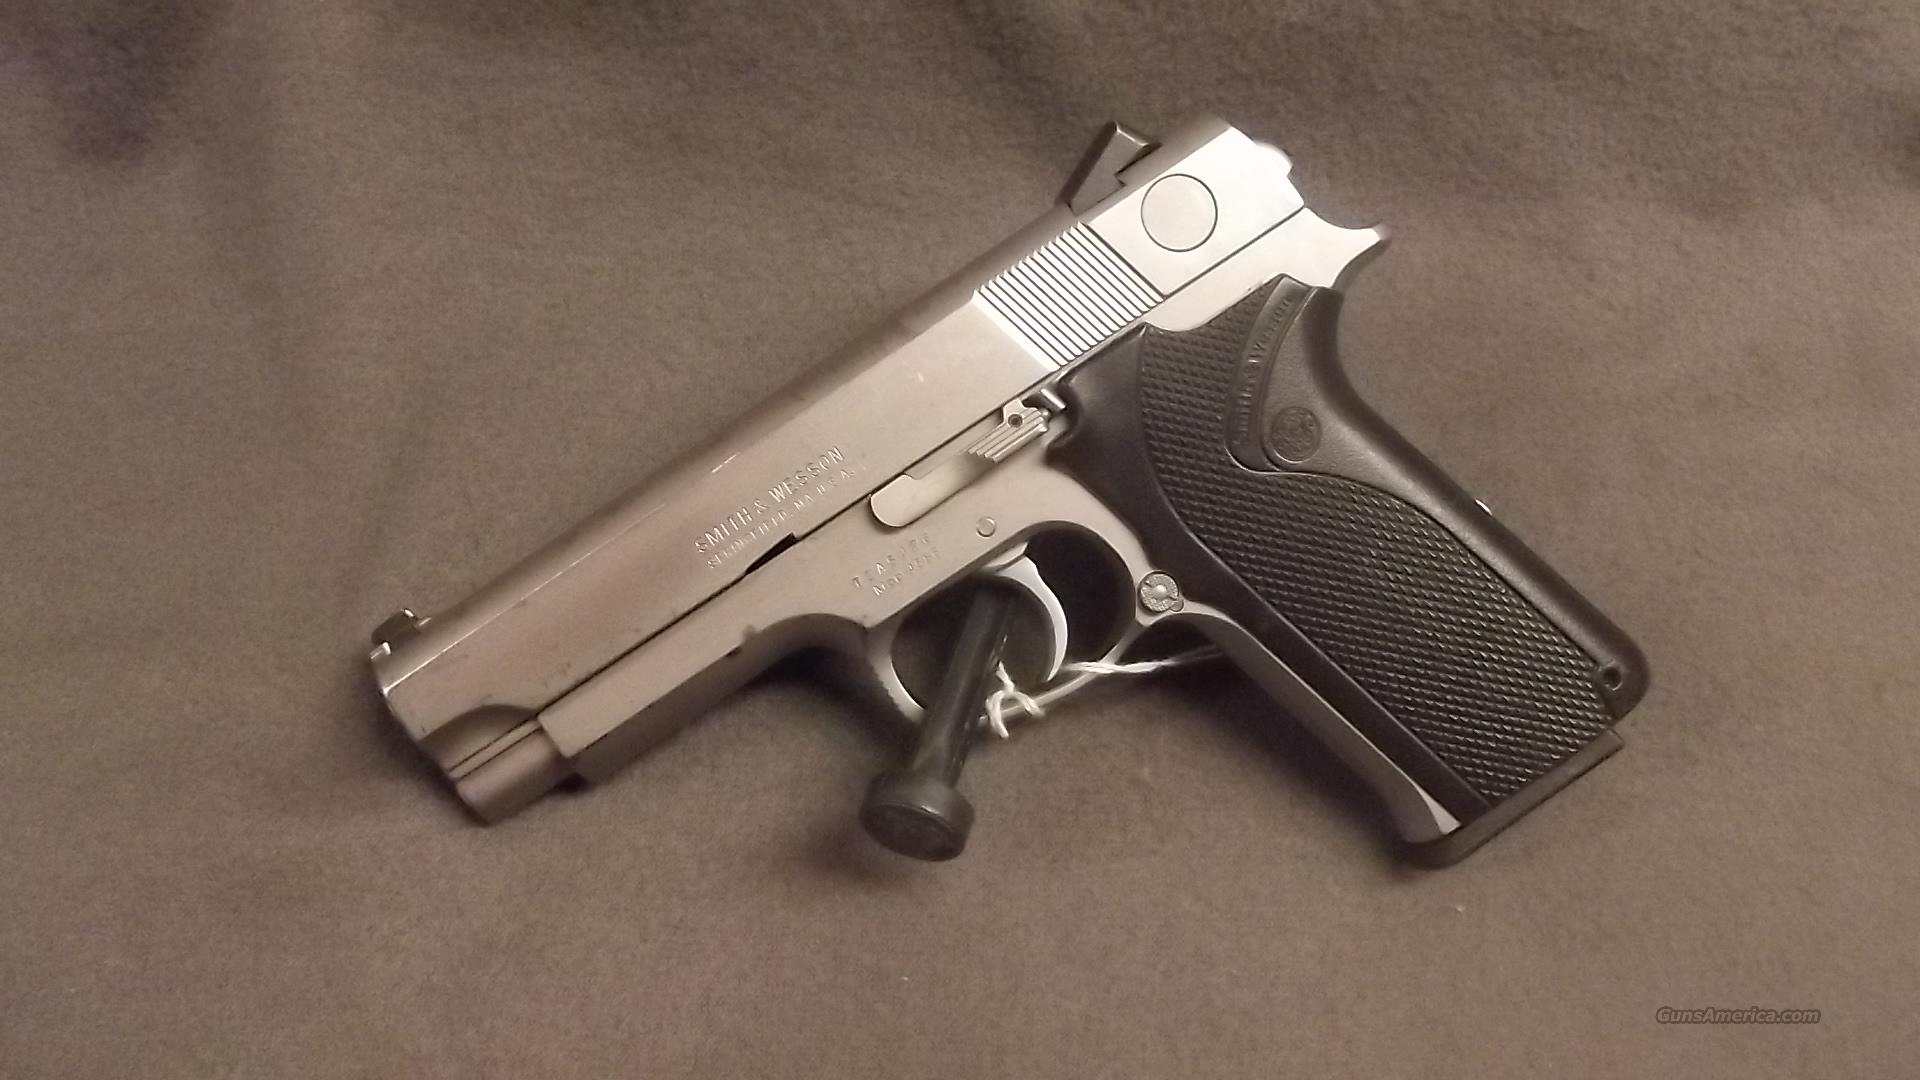 SMITH WESSON 4586   45 ACP  STAINLESS  Guns > Pistols > Smith & Wesson Pistols - Autos > Steel Frame